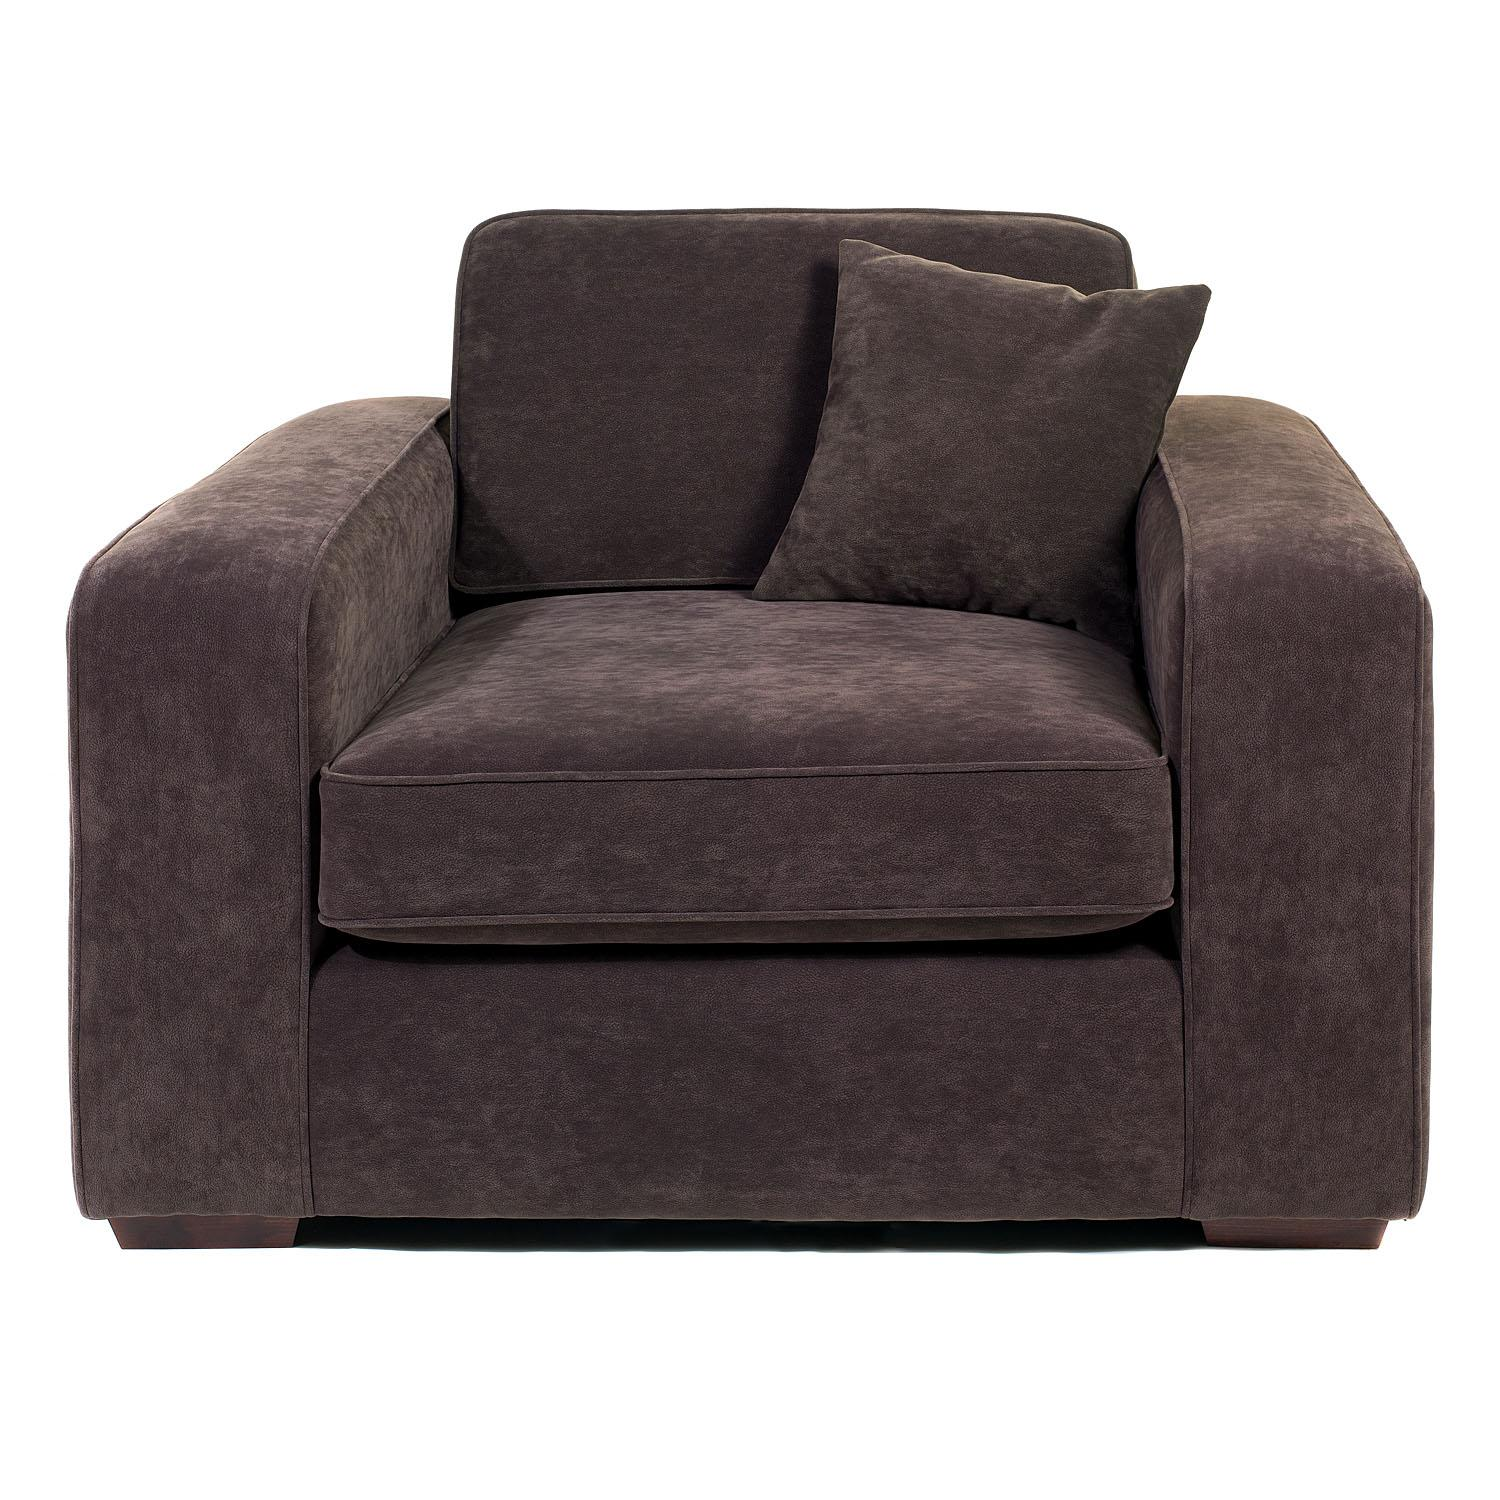 A brown leather chair  Description automatically generated with low confidence